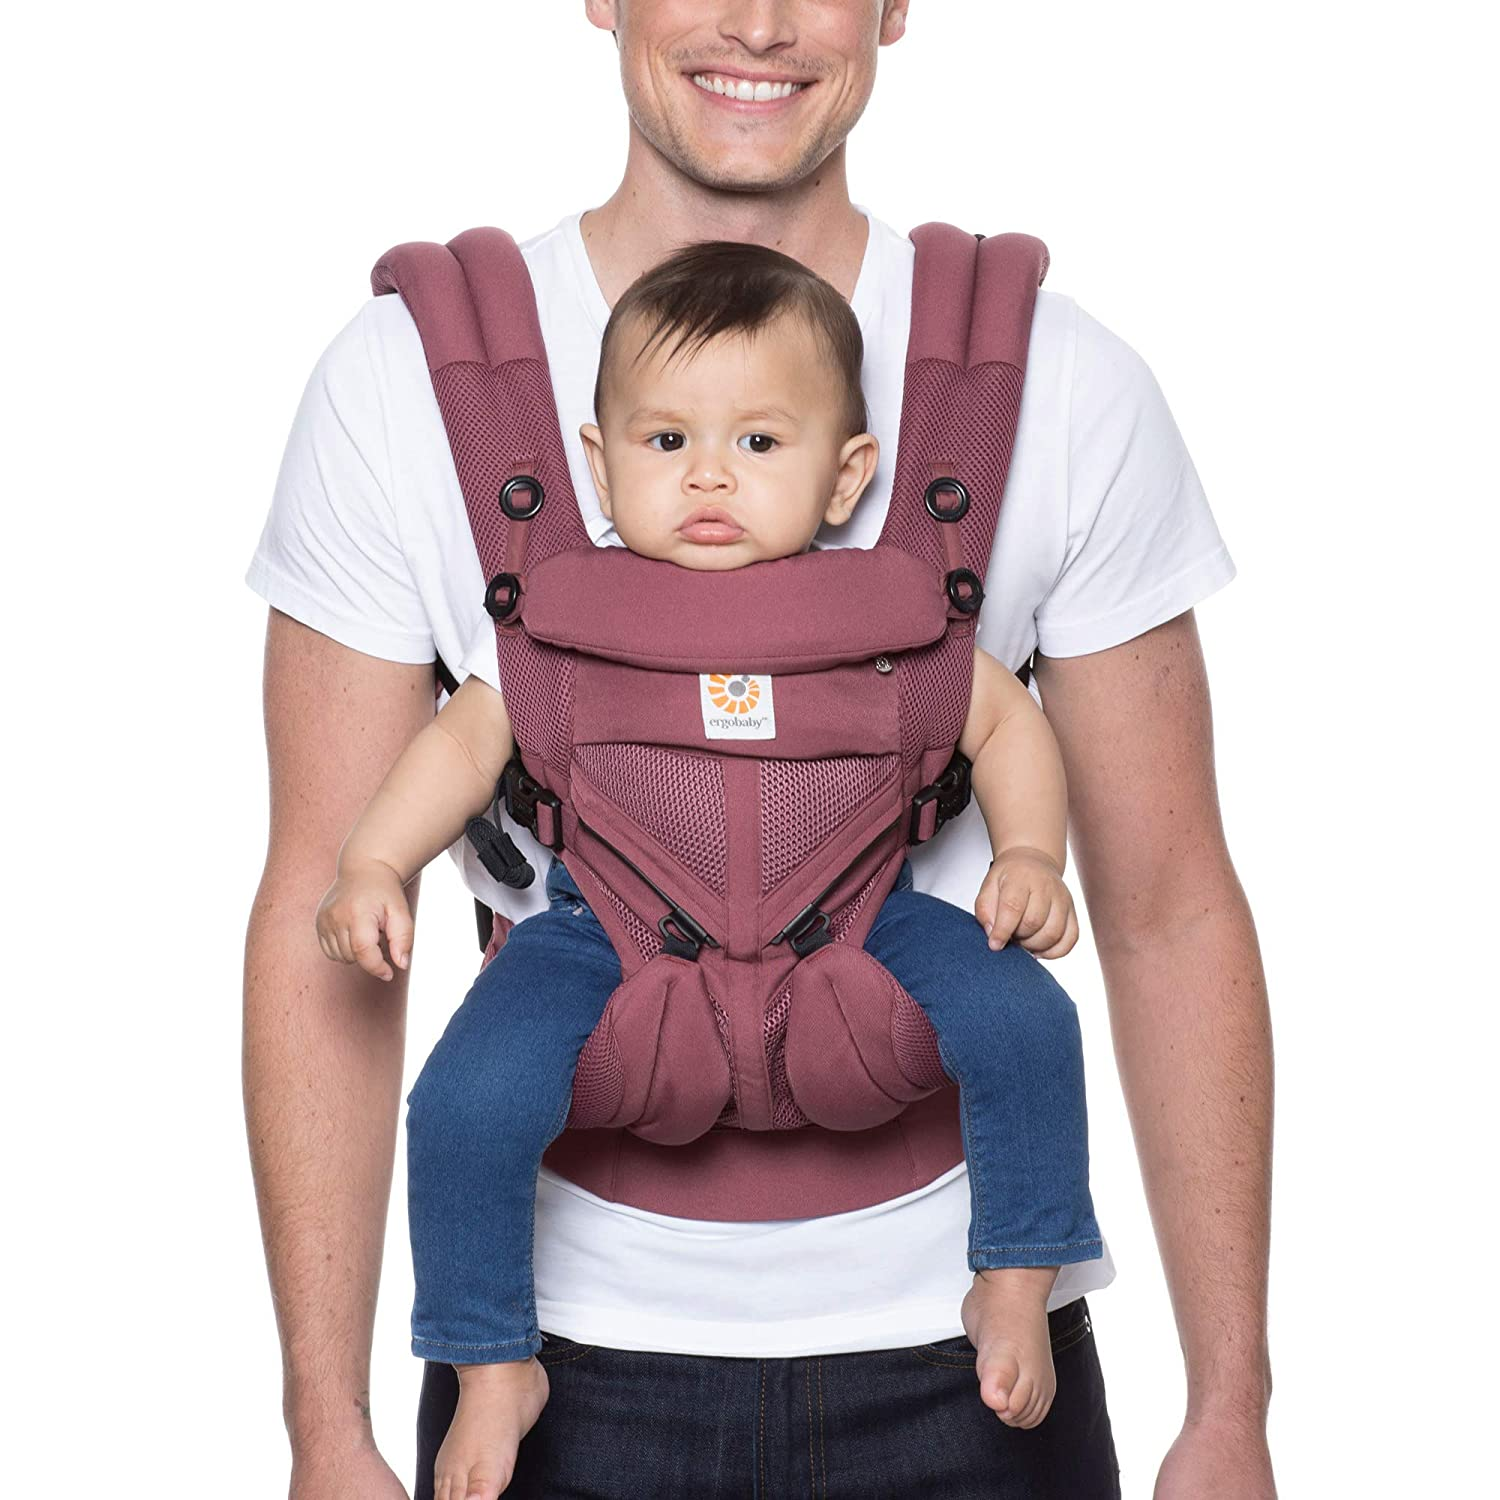 Ergobaby Omni 360 All-Position Baby Carrier for Newborn to Toddler with Lumbar Support & Cool Air Mesh (7-45 Lb), Plum